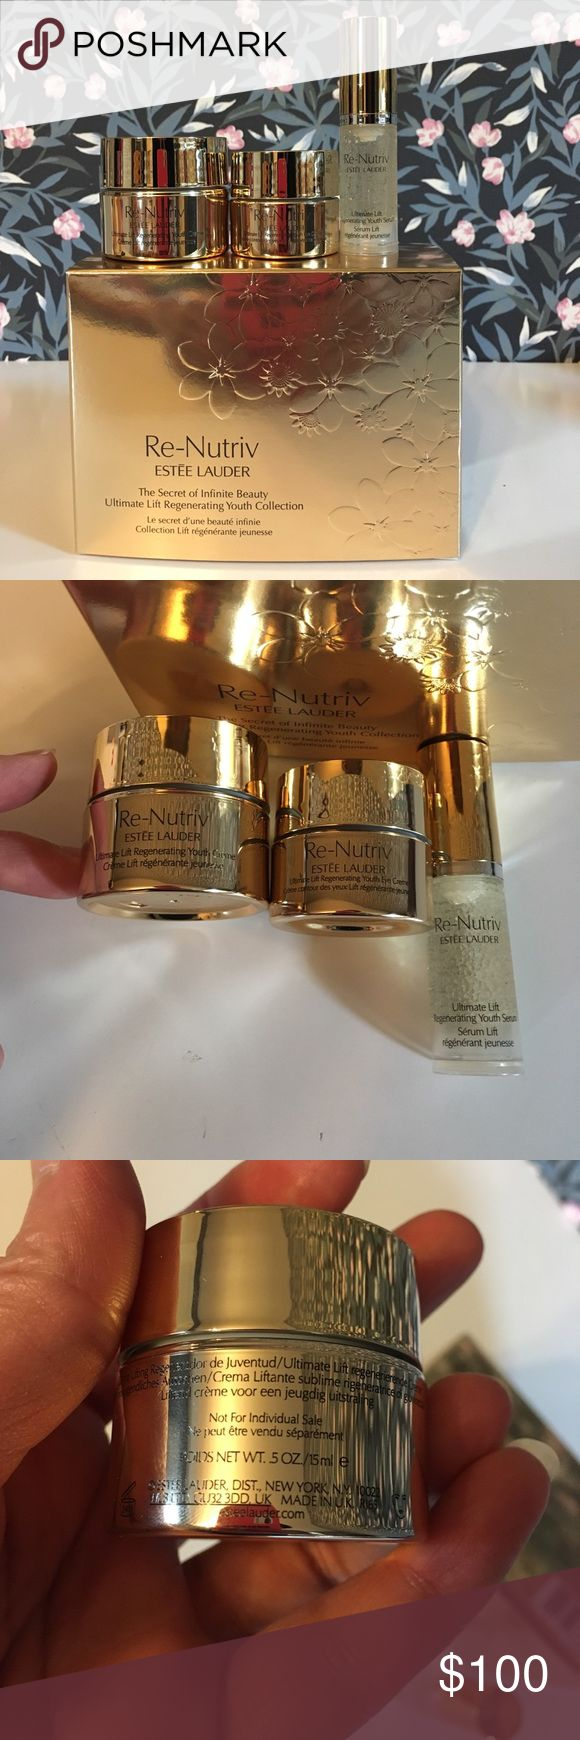 Estée Lauder Re-Nutriv Ultimate Lift set Brandnew in box, just came in.  Total worth $218.36+tax.  Great for gift or travel.  Including:1 Ultimate Lift Regenerating Youth face cream 0.5oz worth $89.71; 2 Ultimate Lift Regenerating Youth eye cream 0.24oz worth $76.80; and 3 Ultimate Lift Regenerating Youth Serum 0.17oz worth $51.85. Estee Lauder Makeup